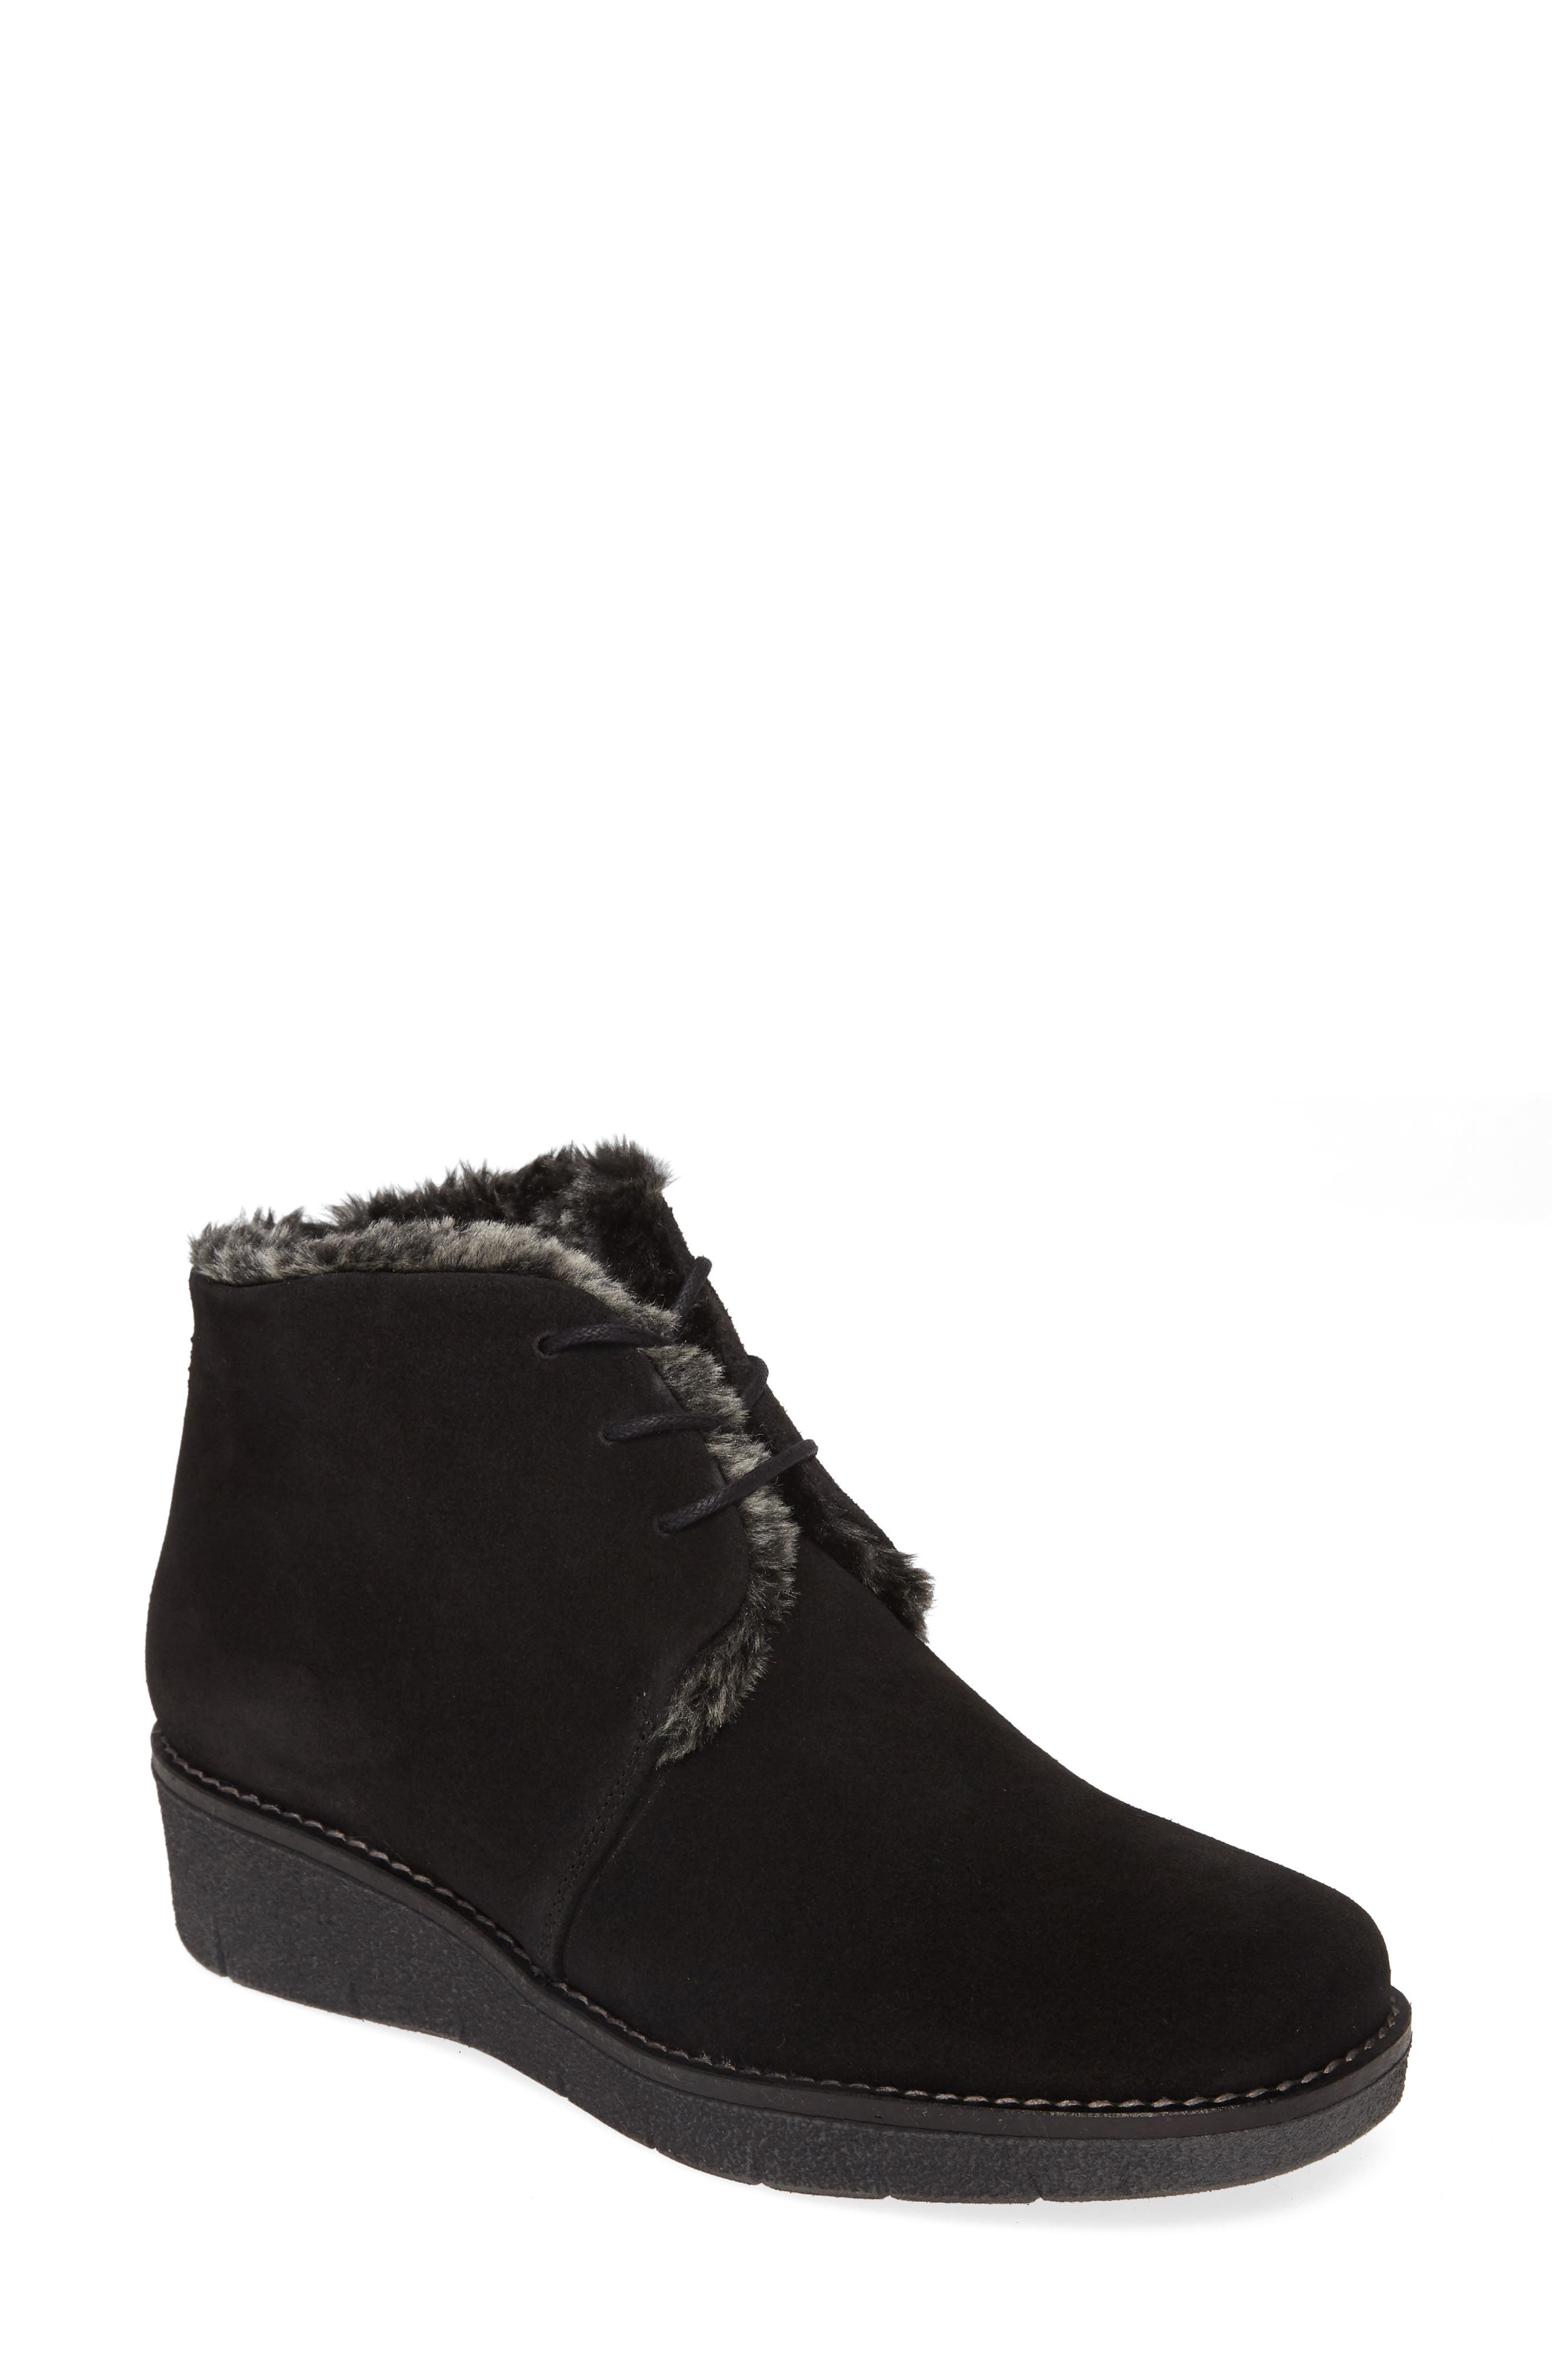 A lace-up bootie on a modest wedge heel offers wintry-chic style with its tufts of soft faux fur peaking out at the shaft. Style Name: Toni Pons Alp Faux Fur Bootie (Women). Style Number: 5916582. Available in stores.